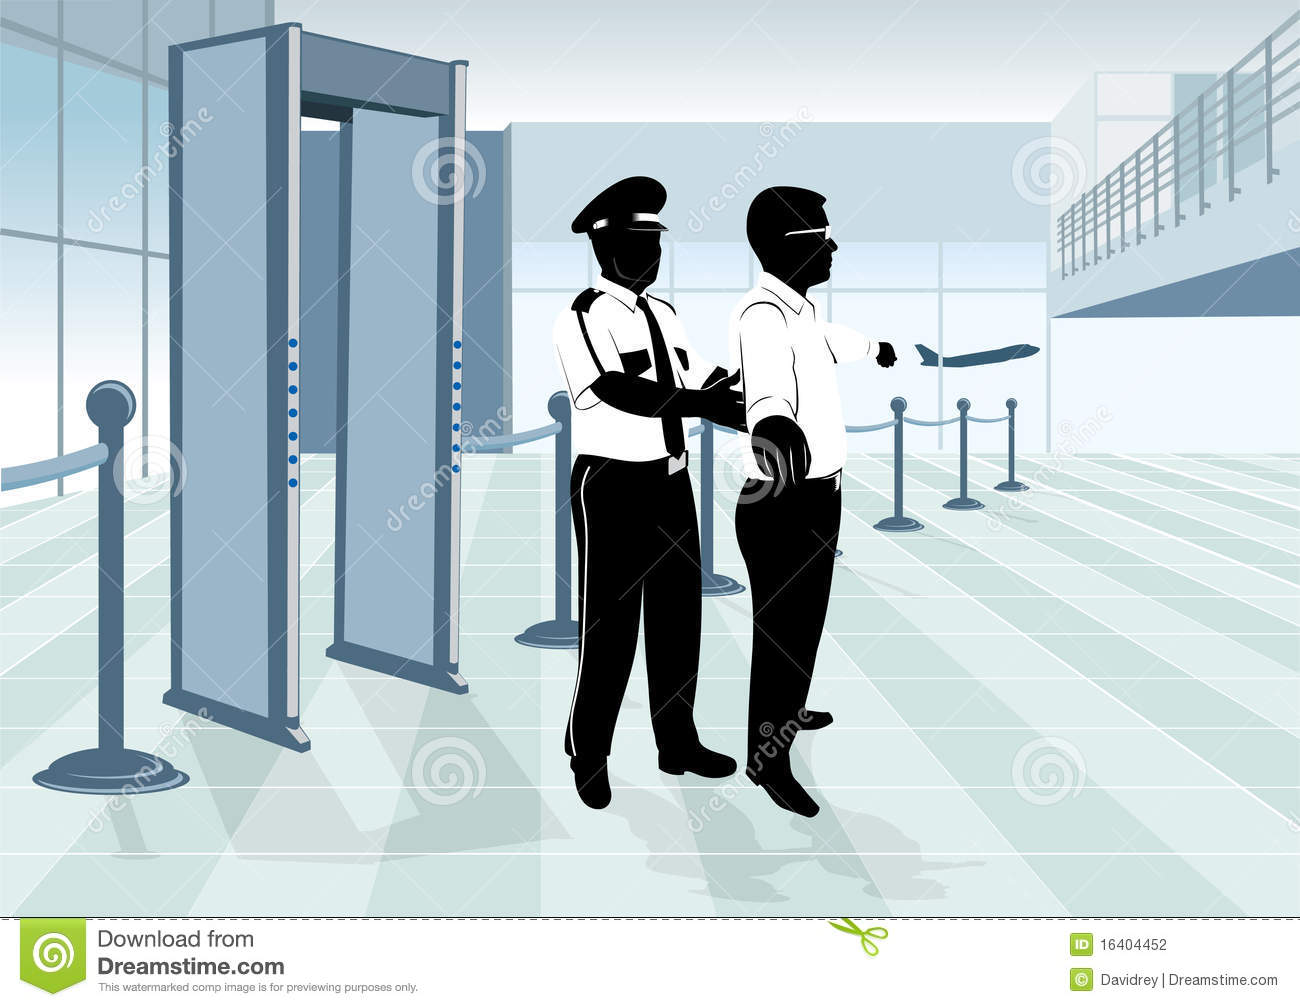 free clipart airport security - photo #27